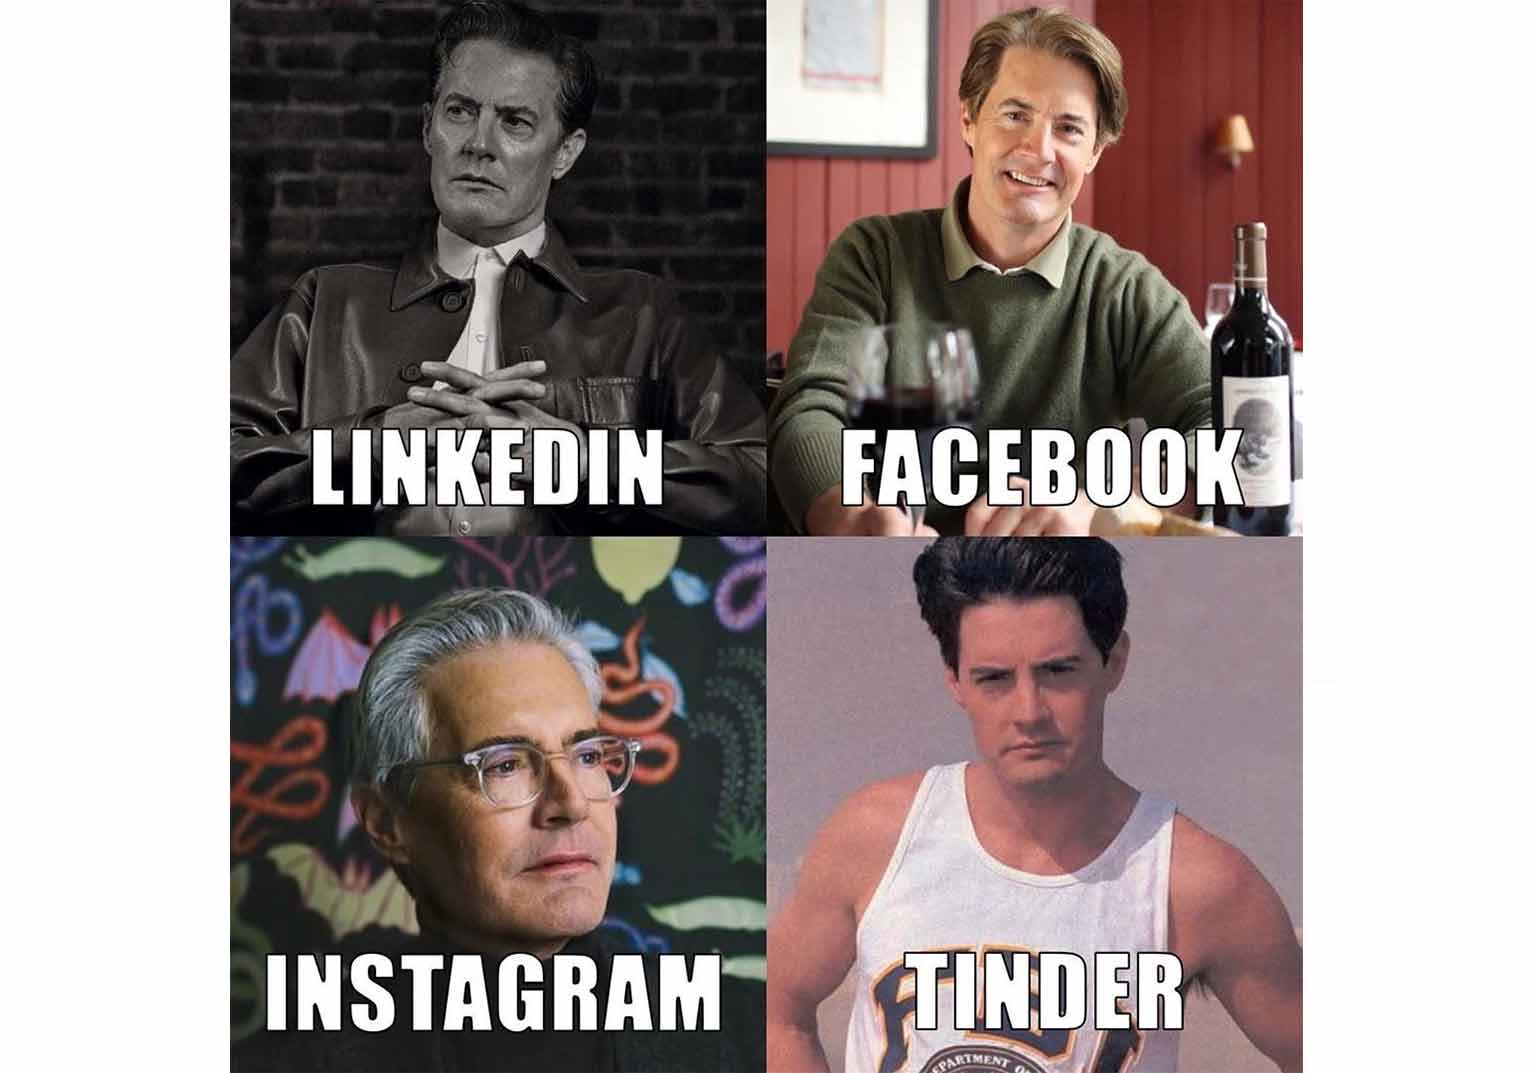 This meme from Kyle Maclachlan followed a widely shared meme that Dolly Parton posted on Instagram.